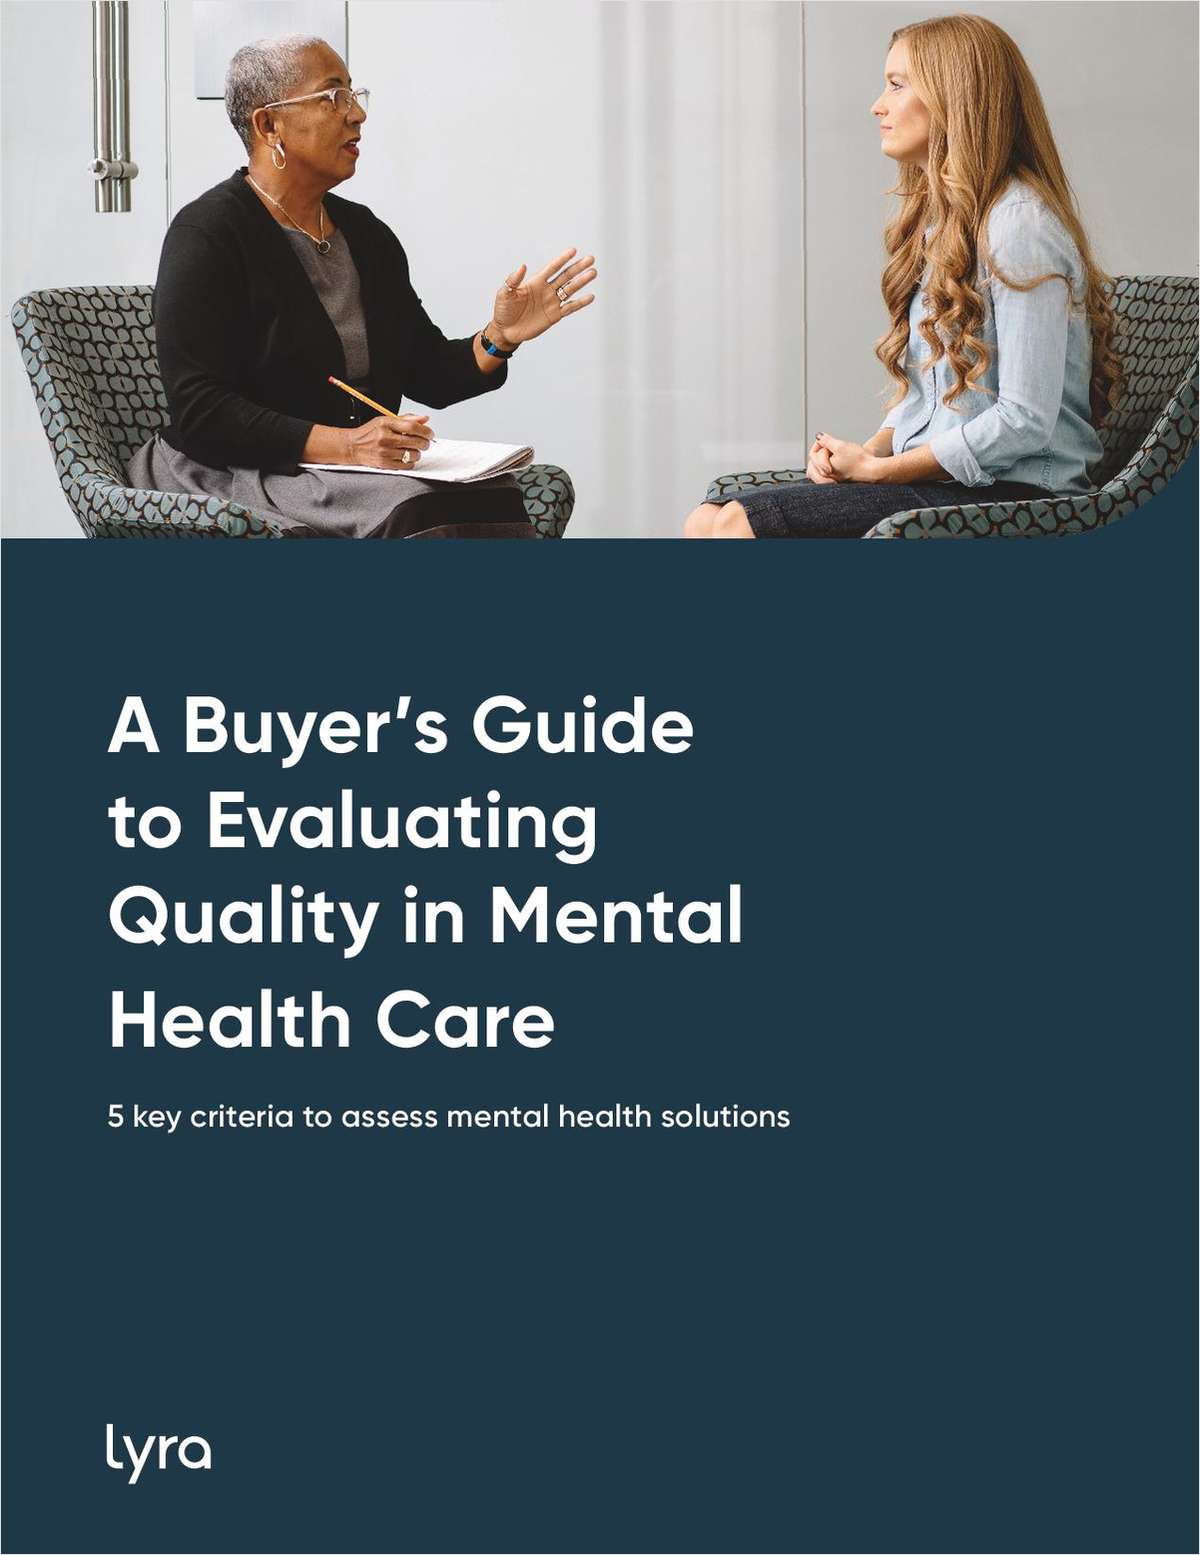 A Buyer's Guide to Evaluating Quality in Mental Health Care